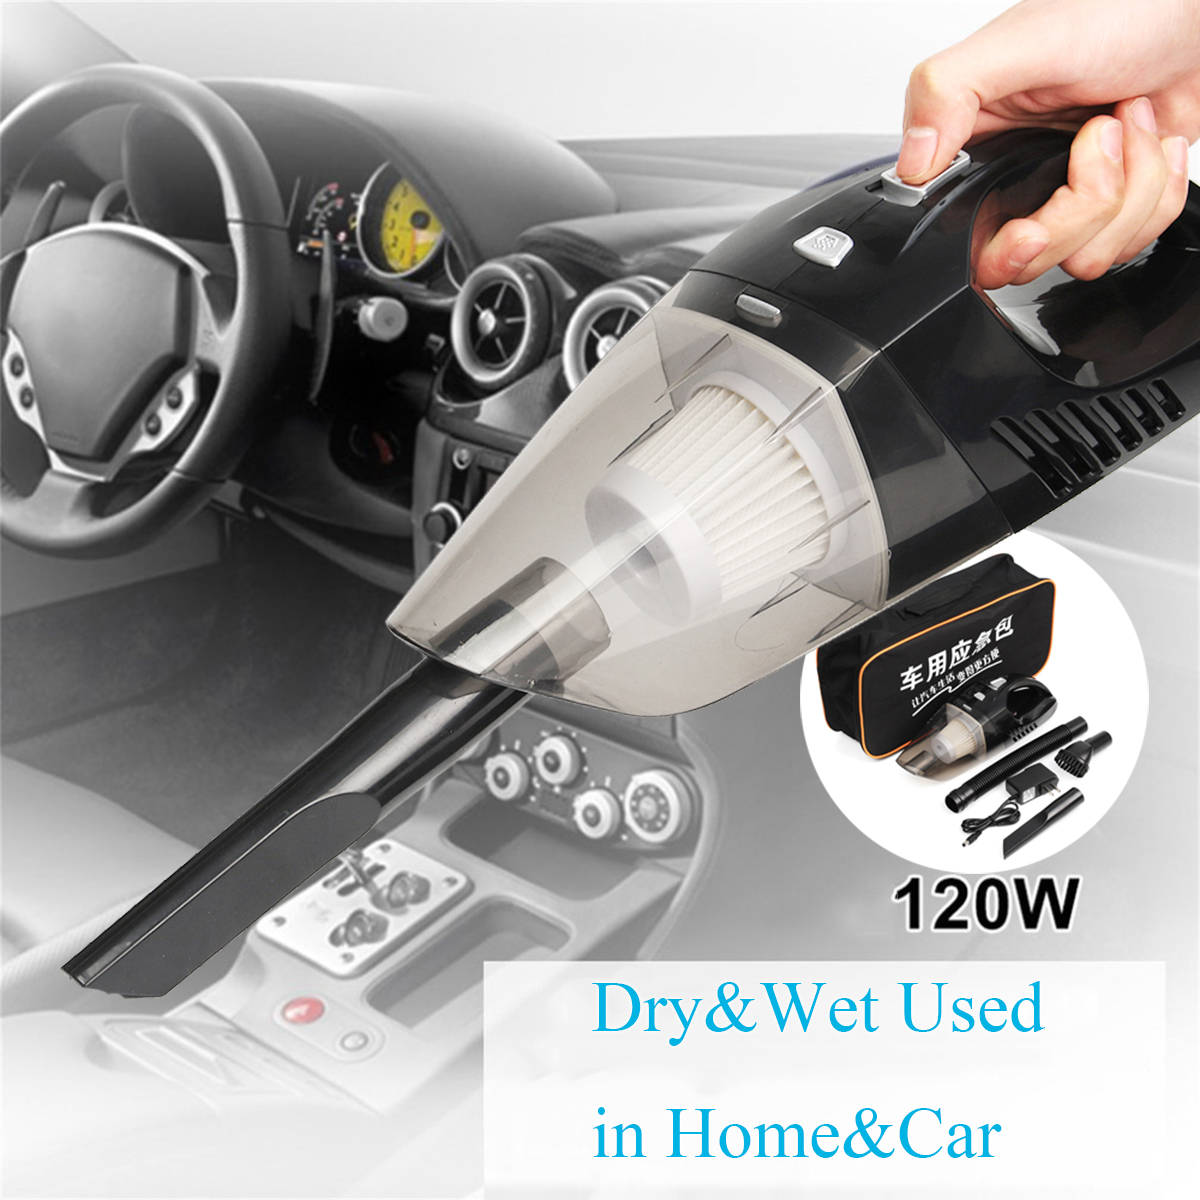 120W LED Compact Cordless Wet&Dry Portable Car Home Vacuum Cleaner Low Noise